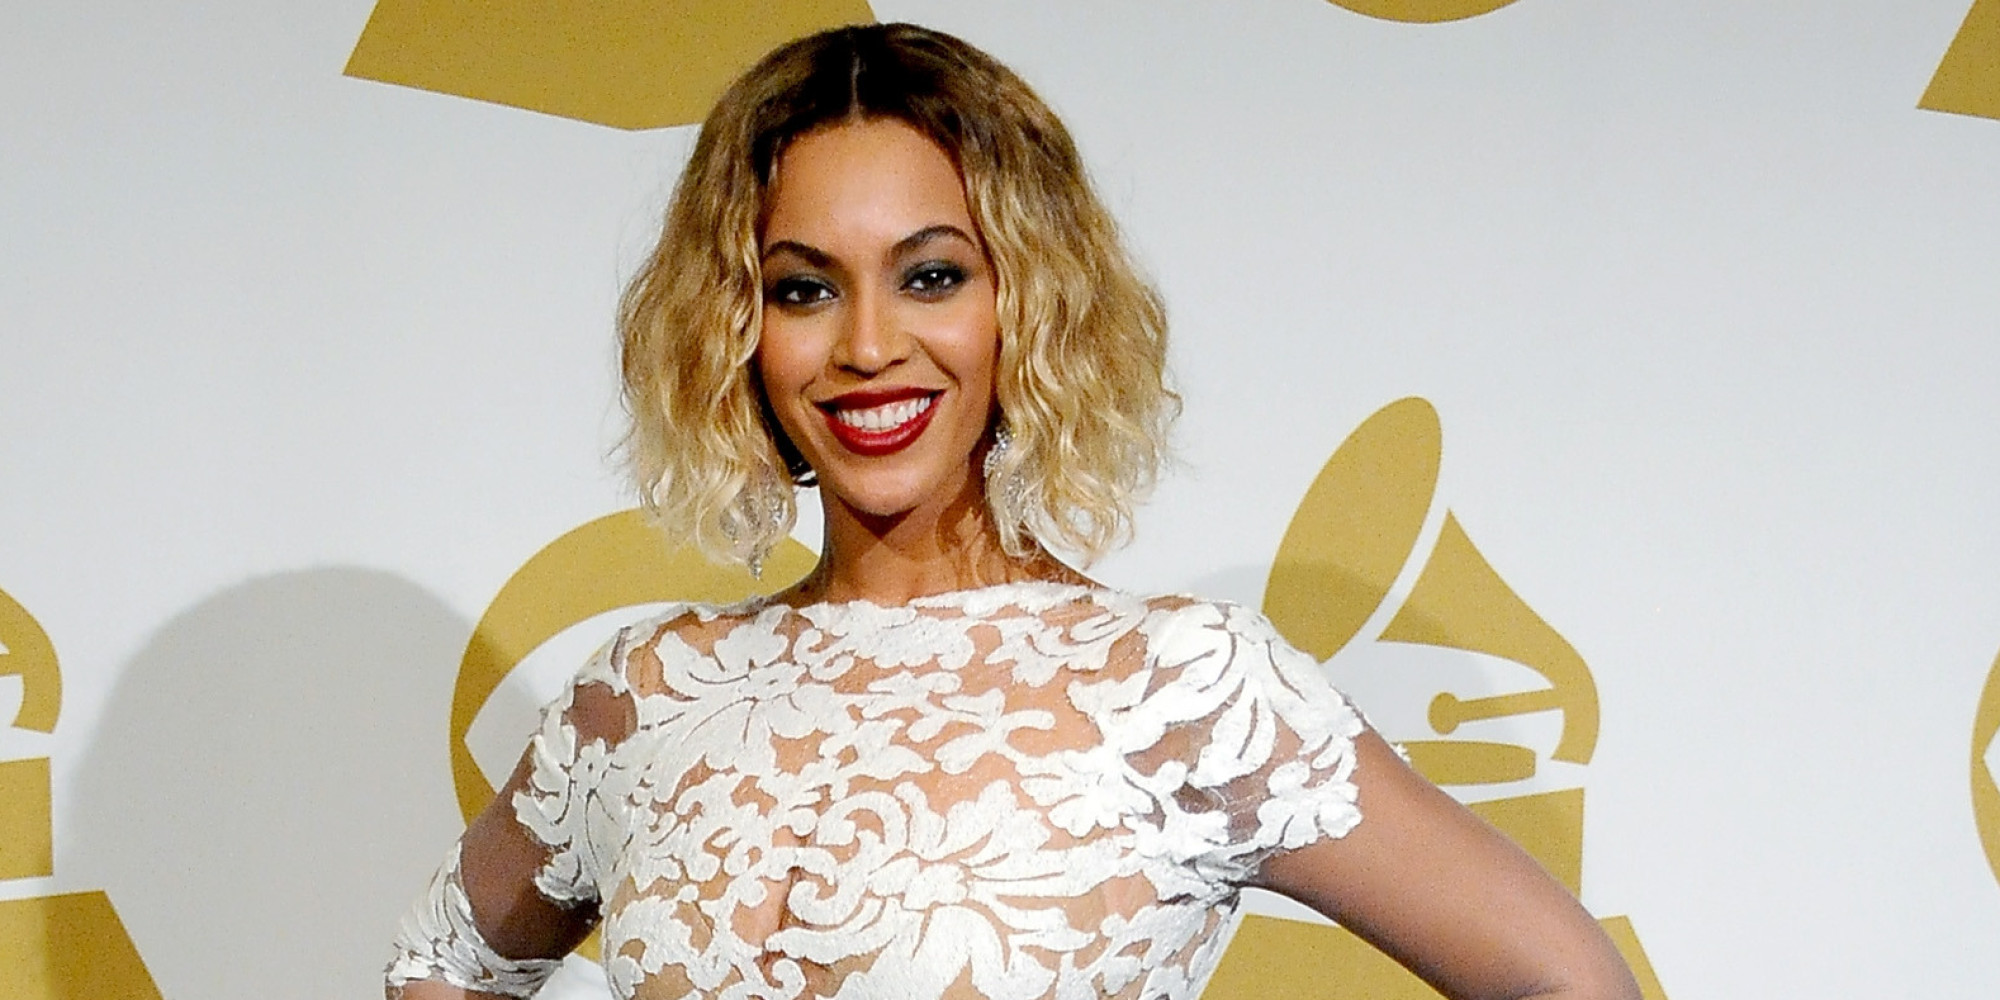 Beyonce Grammys: Beyoncé Changes From Bodysuit Into Equally Sexy Peek-A-Boo